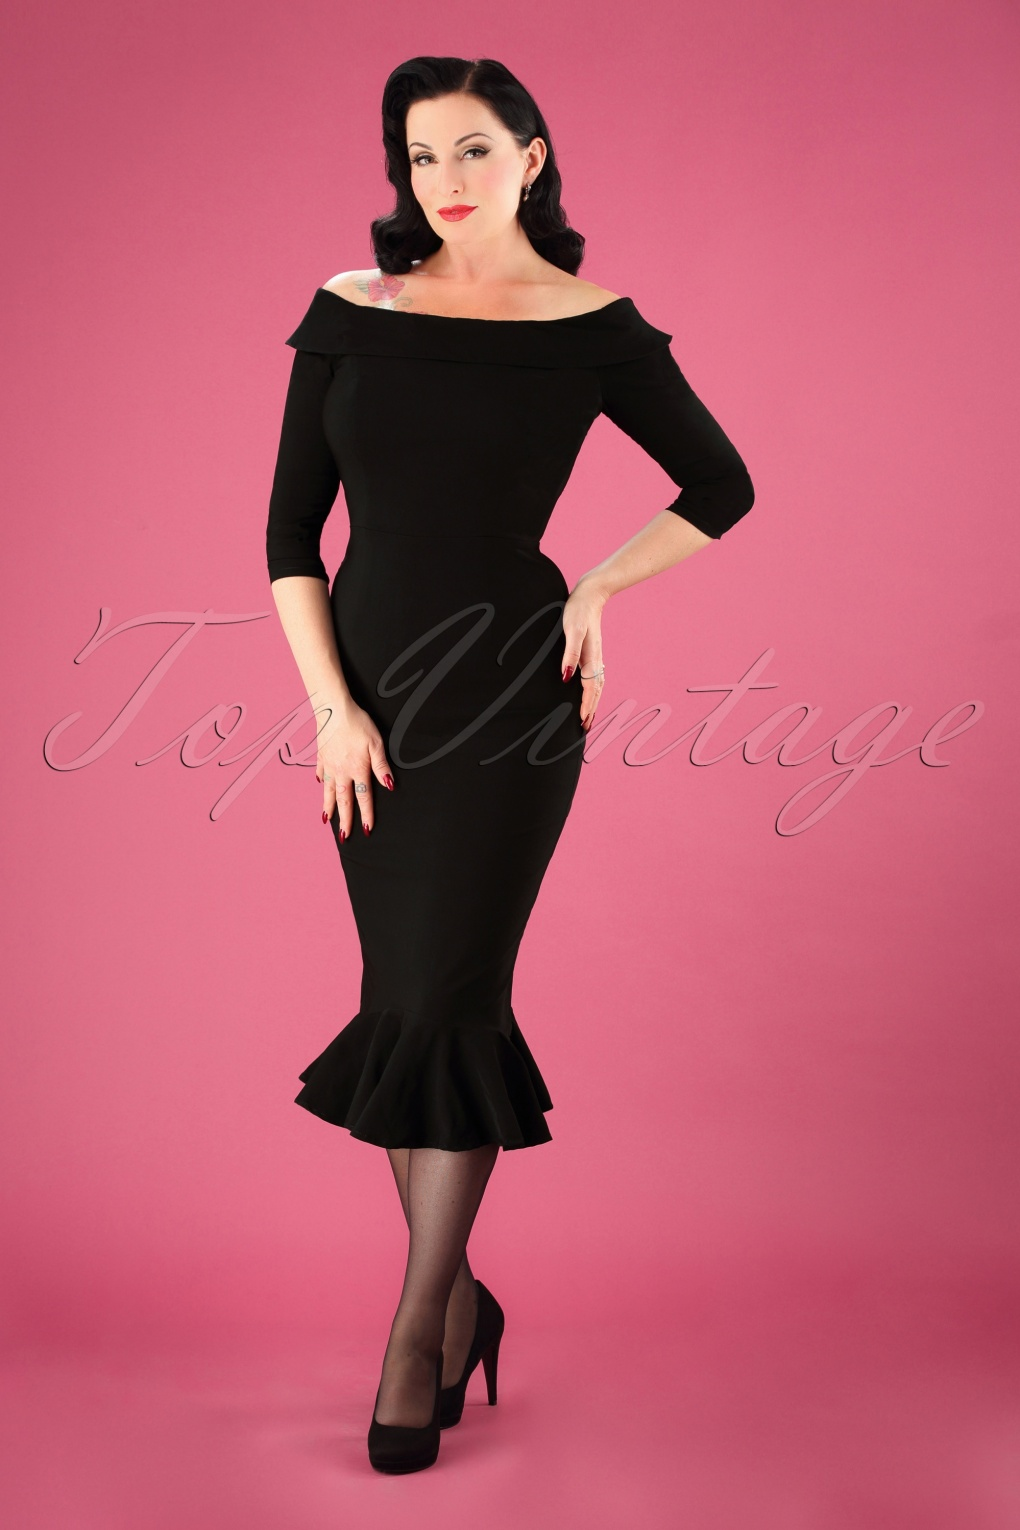 1950s Dresses, 50s Dresses | 1950s Style Dresses 50s Orla Fishtail Pencil Dress in Black £58.75 AT vintagedancer.com